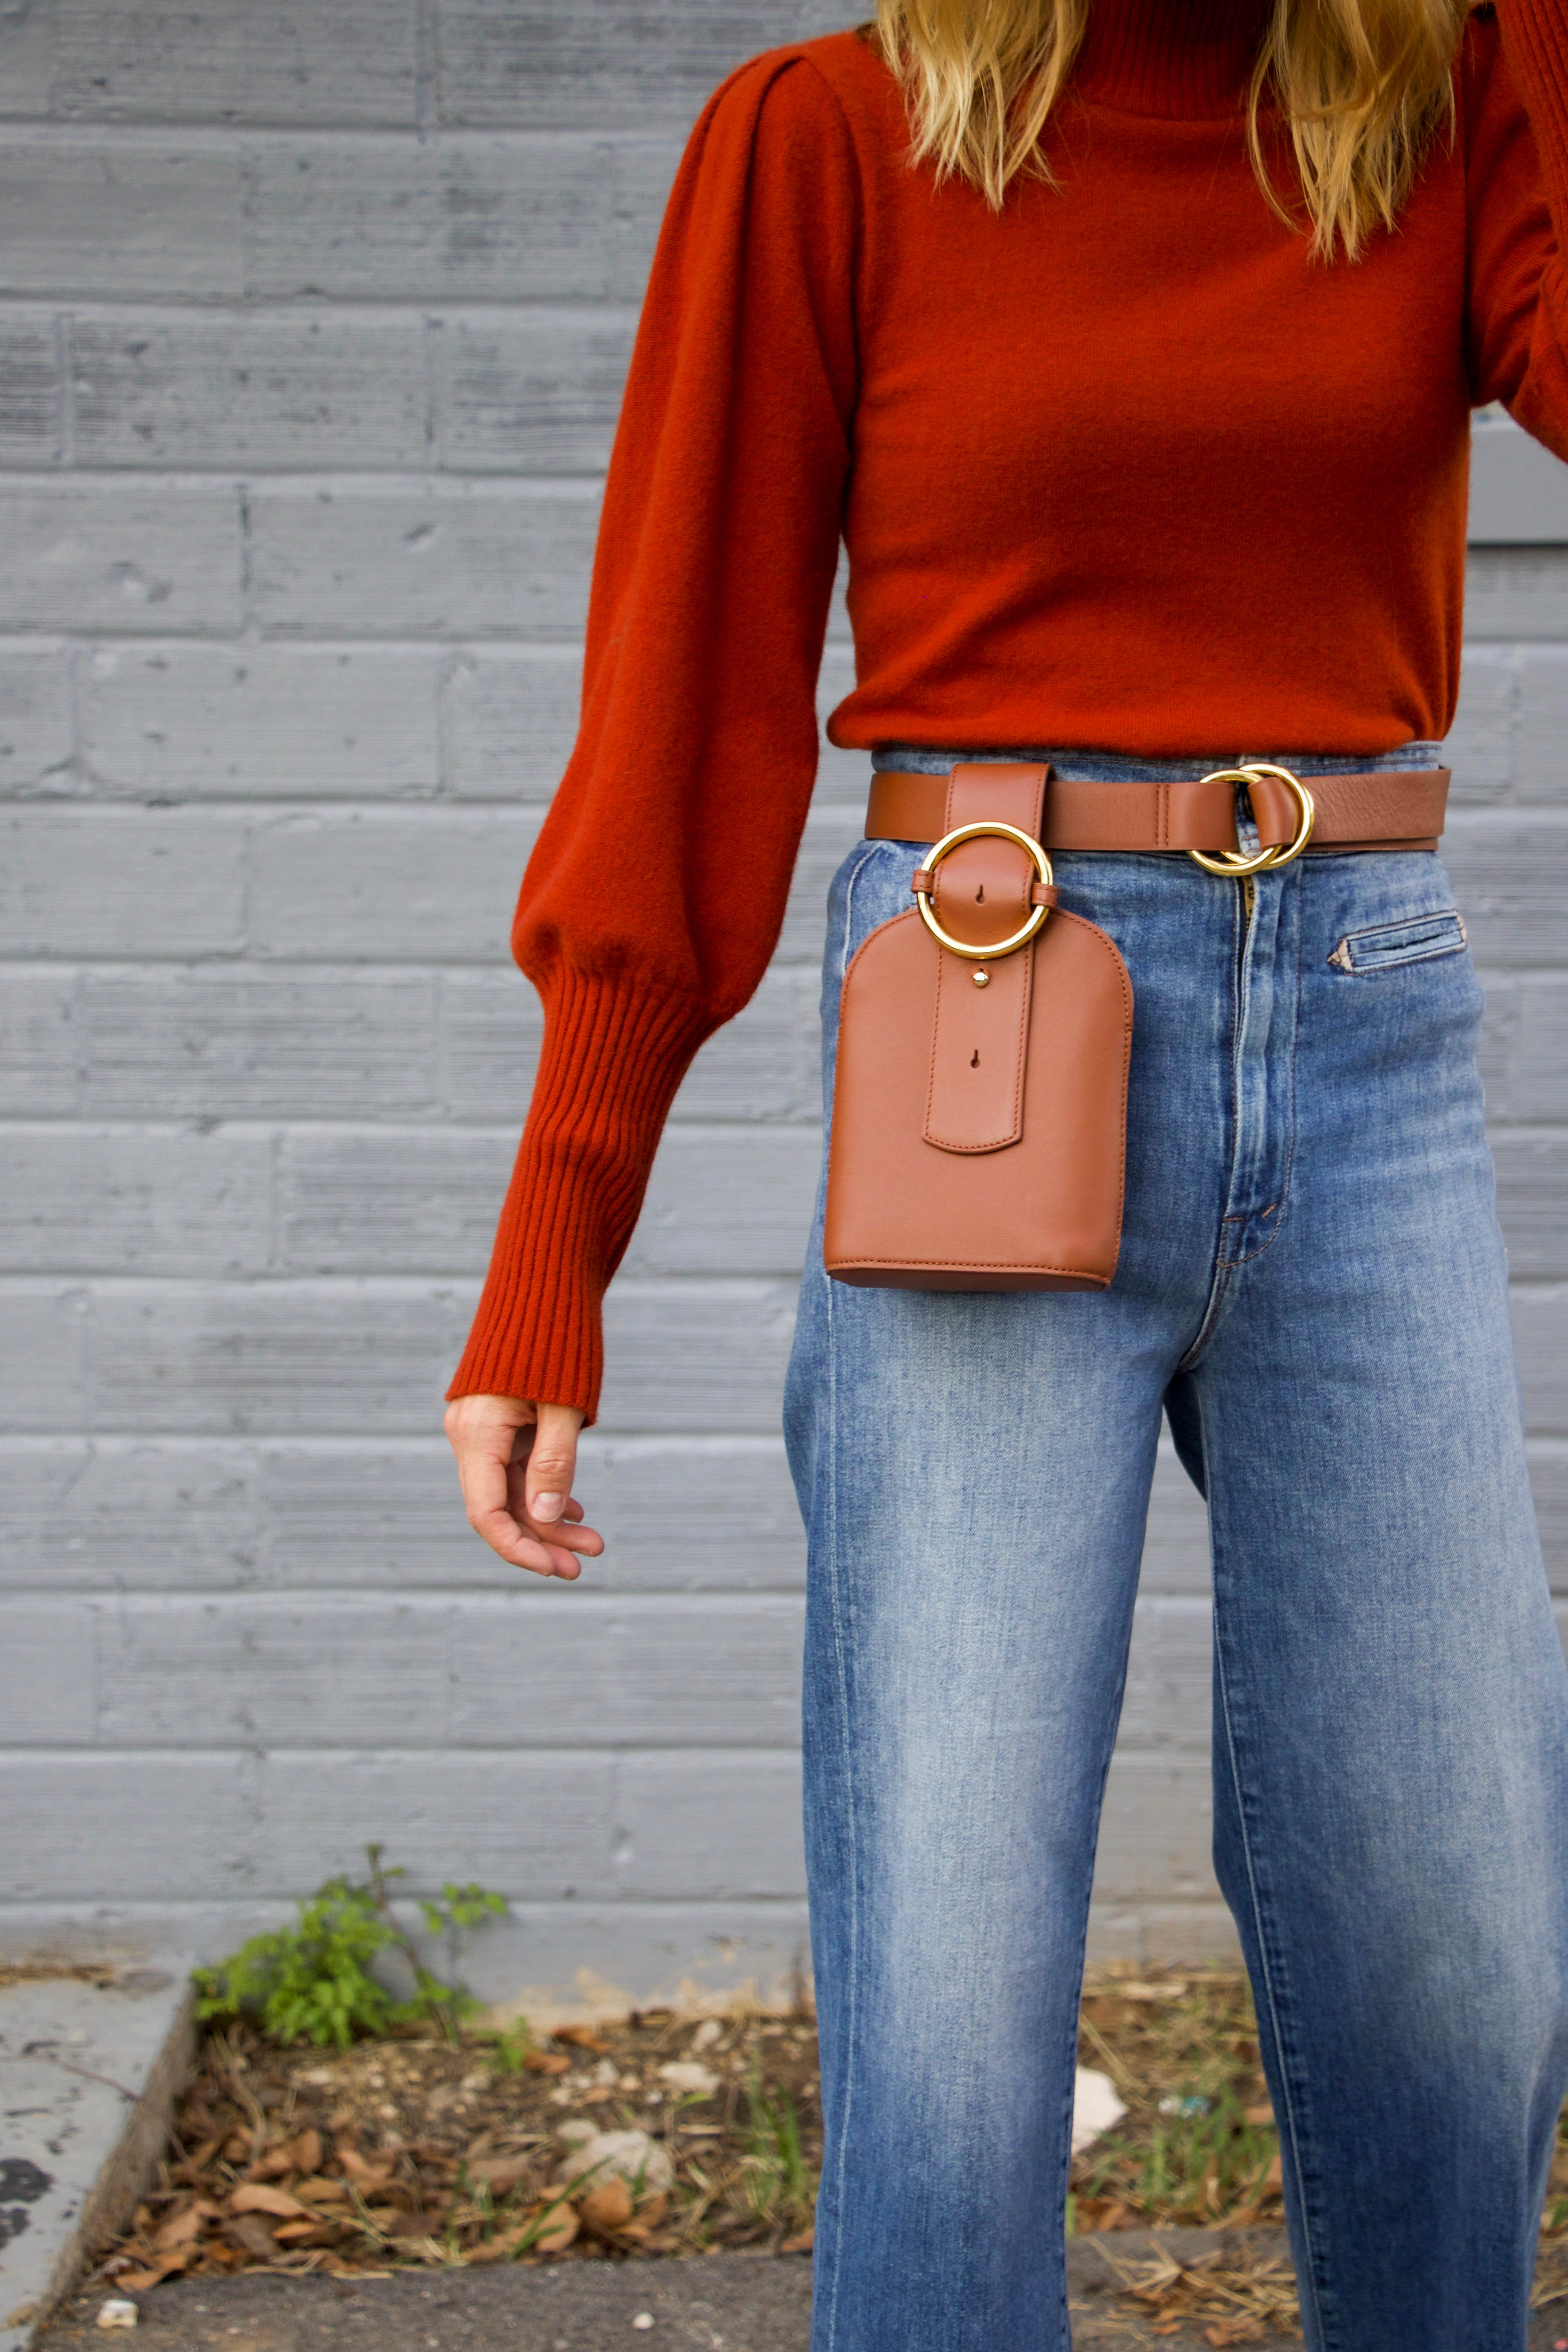 Rust colored sweater by Sea - Mother denim - White booties - Belt bag